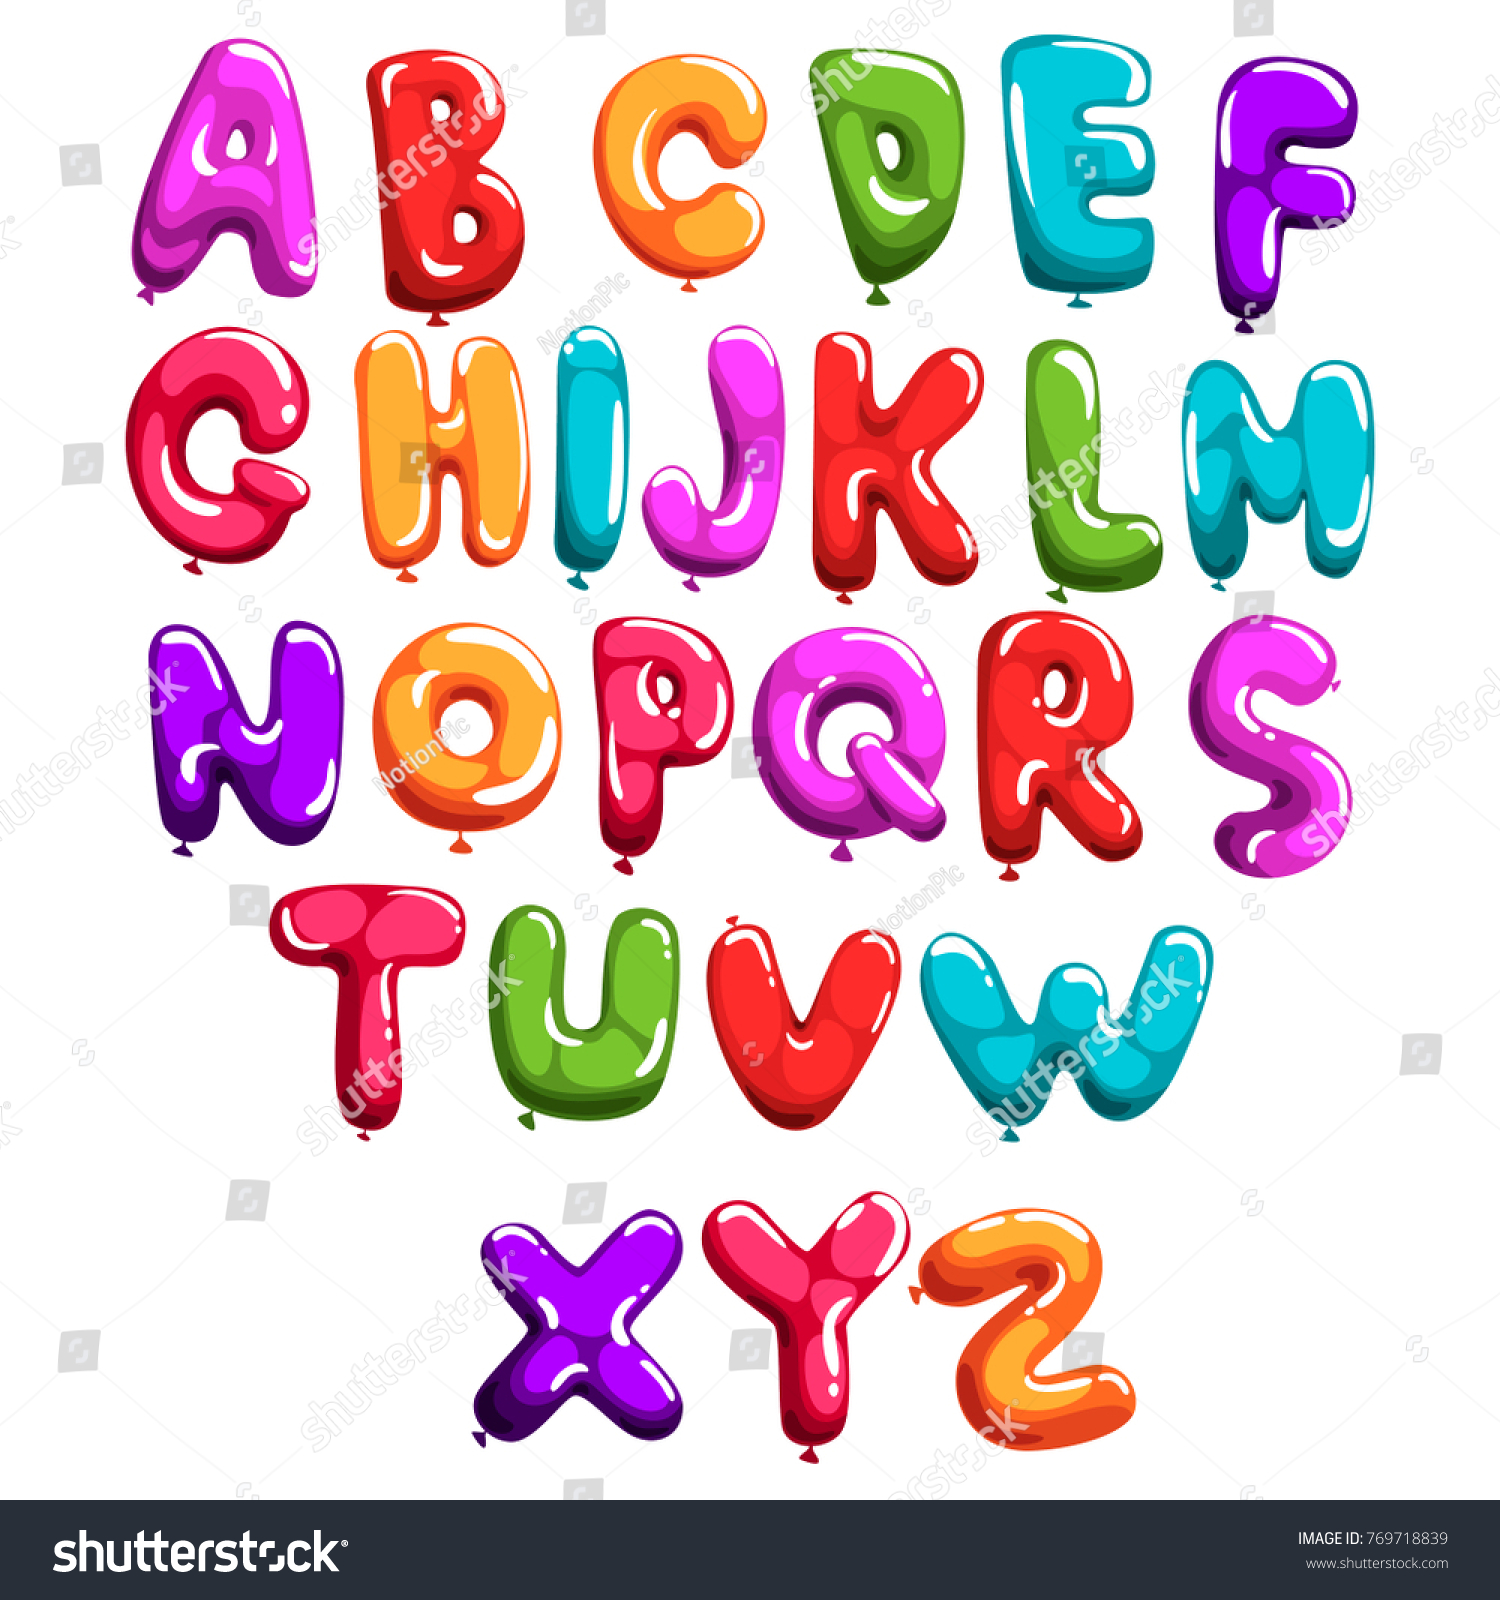 Set Of Colorful Font In Form Balloons Children S English Alphabet Letters From A